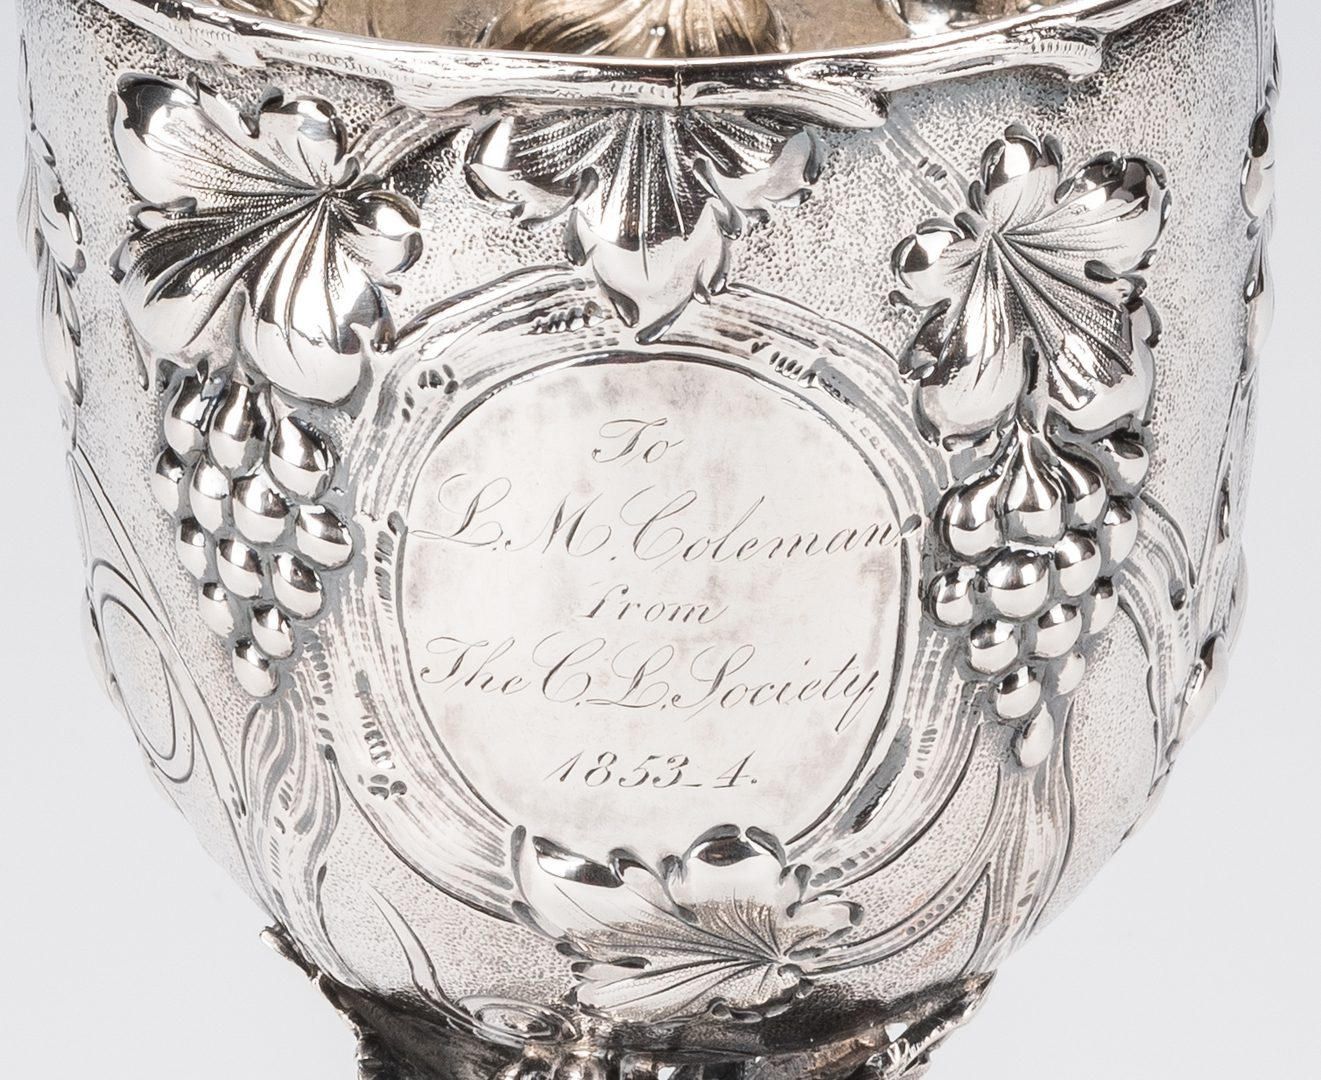 Lot 81: Mitchell & Tyler Coin Silver Presentation Goblet, Lewis Minor Coleman